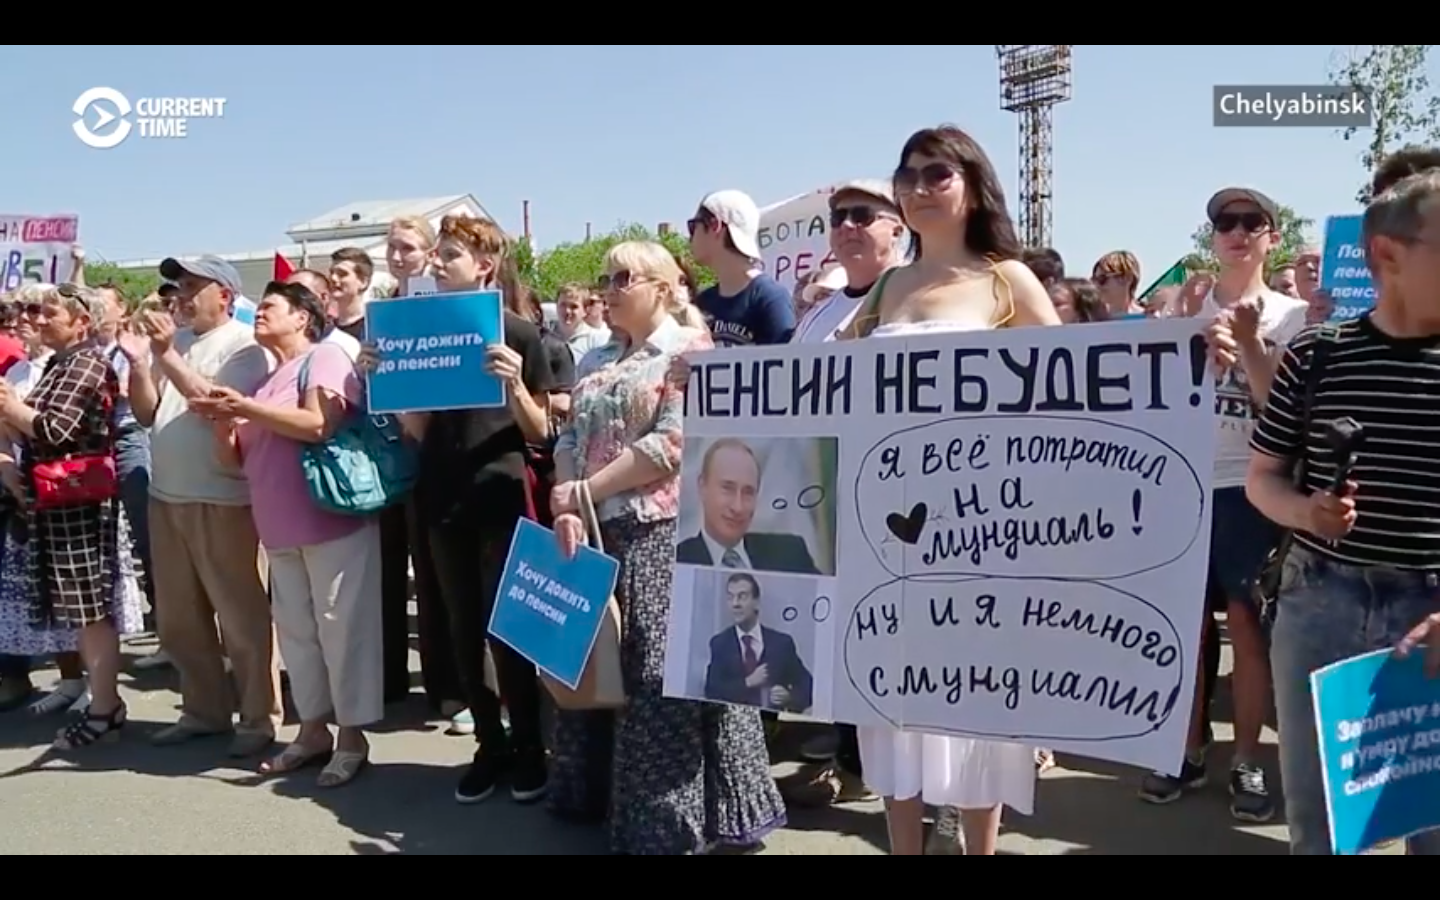 Putin's Decision To Raise Retirement Age Sinks Approval Rating, Triggers Nationwide Protests